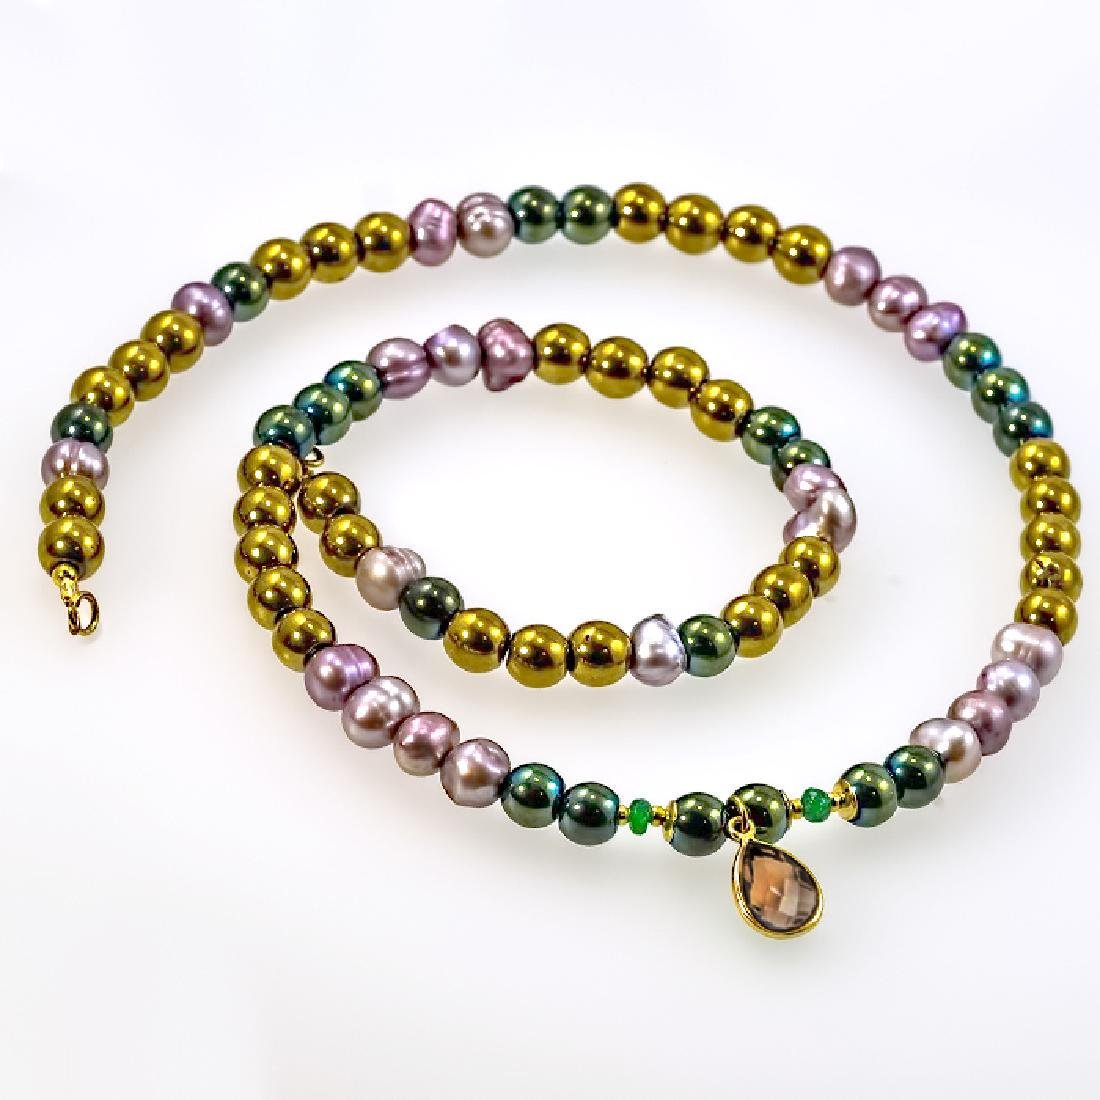 14K Multi-color Necklace with Emerald and Ash Topaz - 2